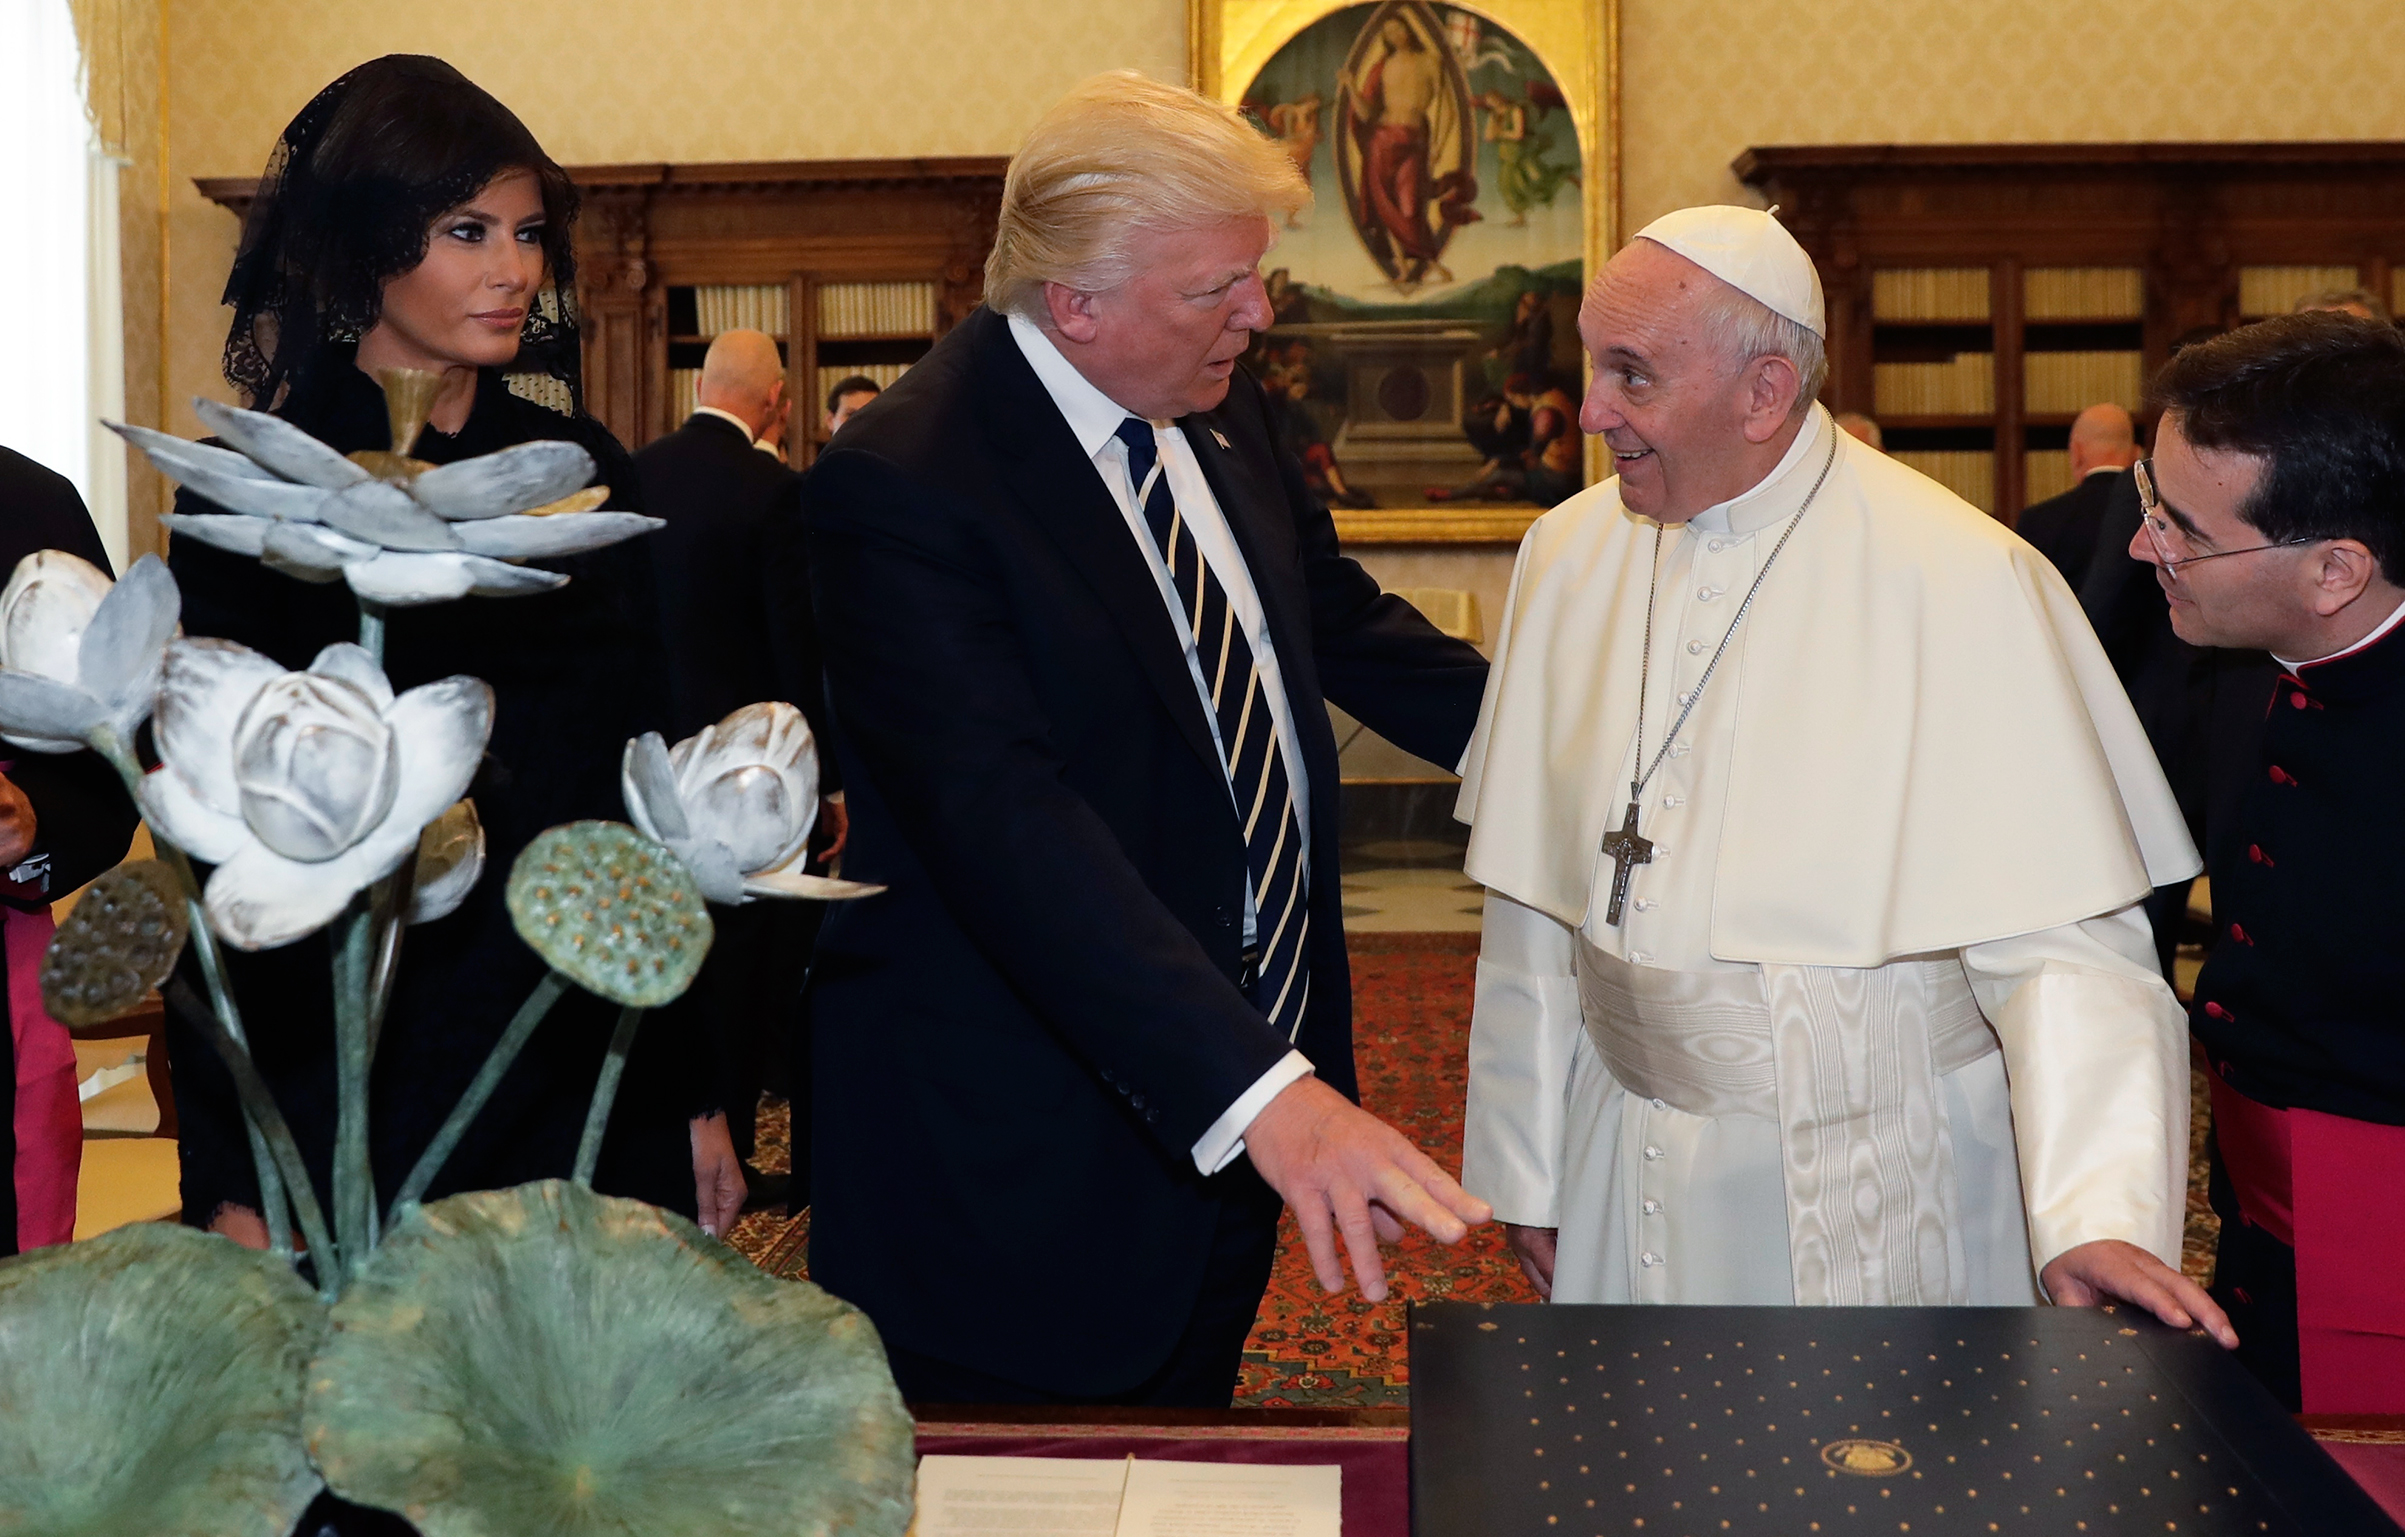 Pope Francis exchanges gifts with President Trump and First Lady Melania Trump at the Vatican on May 24, 2017.